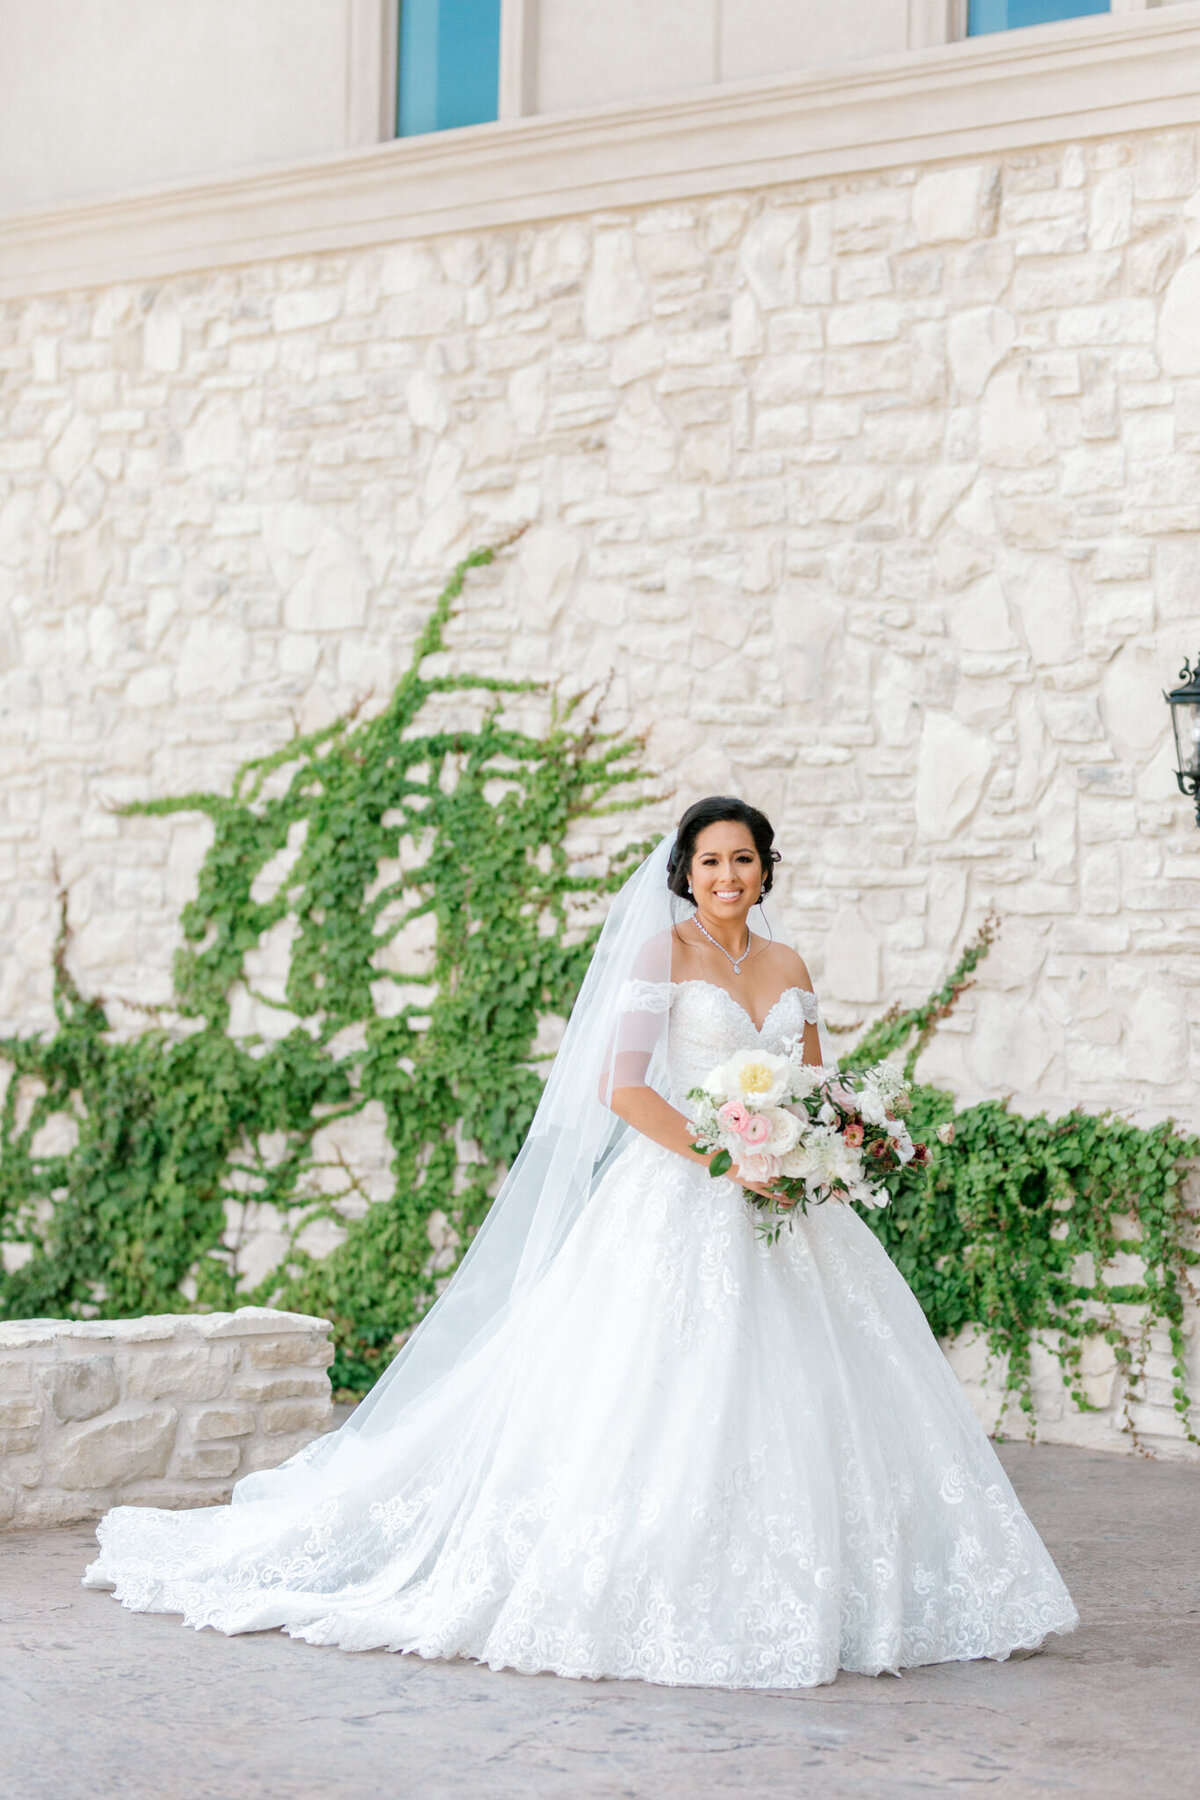 Jasmine & Josh Wedding at Knotting Hill Place | Dallas DFW Wedding Photographer | Sami Kathryn Photography-37